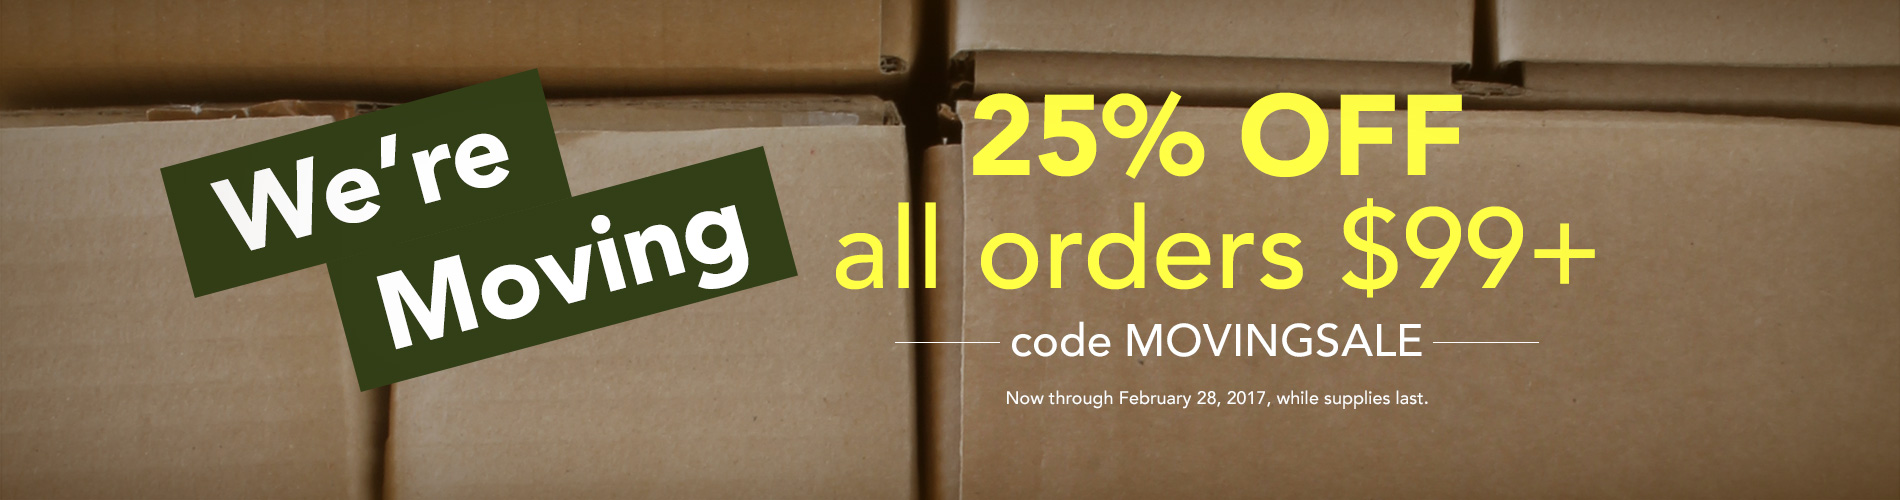 We're Moving! 25% off all orders $99+ with code MOVINGSALE. Now through February 28, 2017 while supplies last.